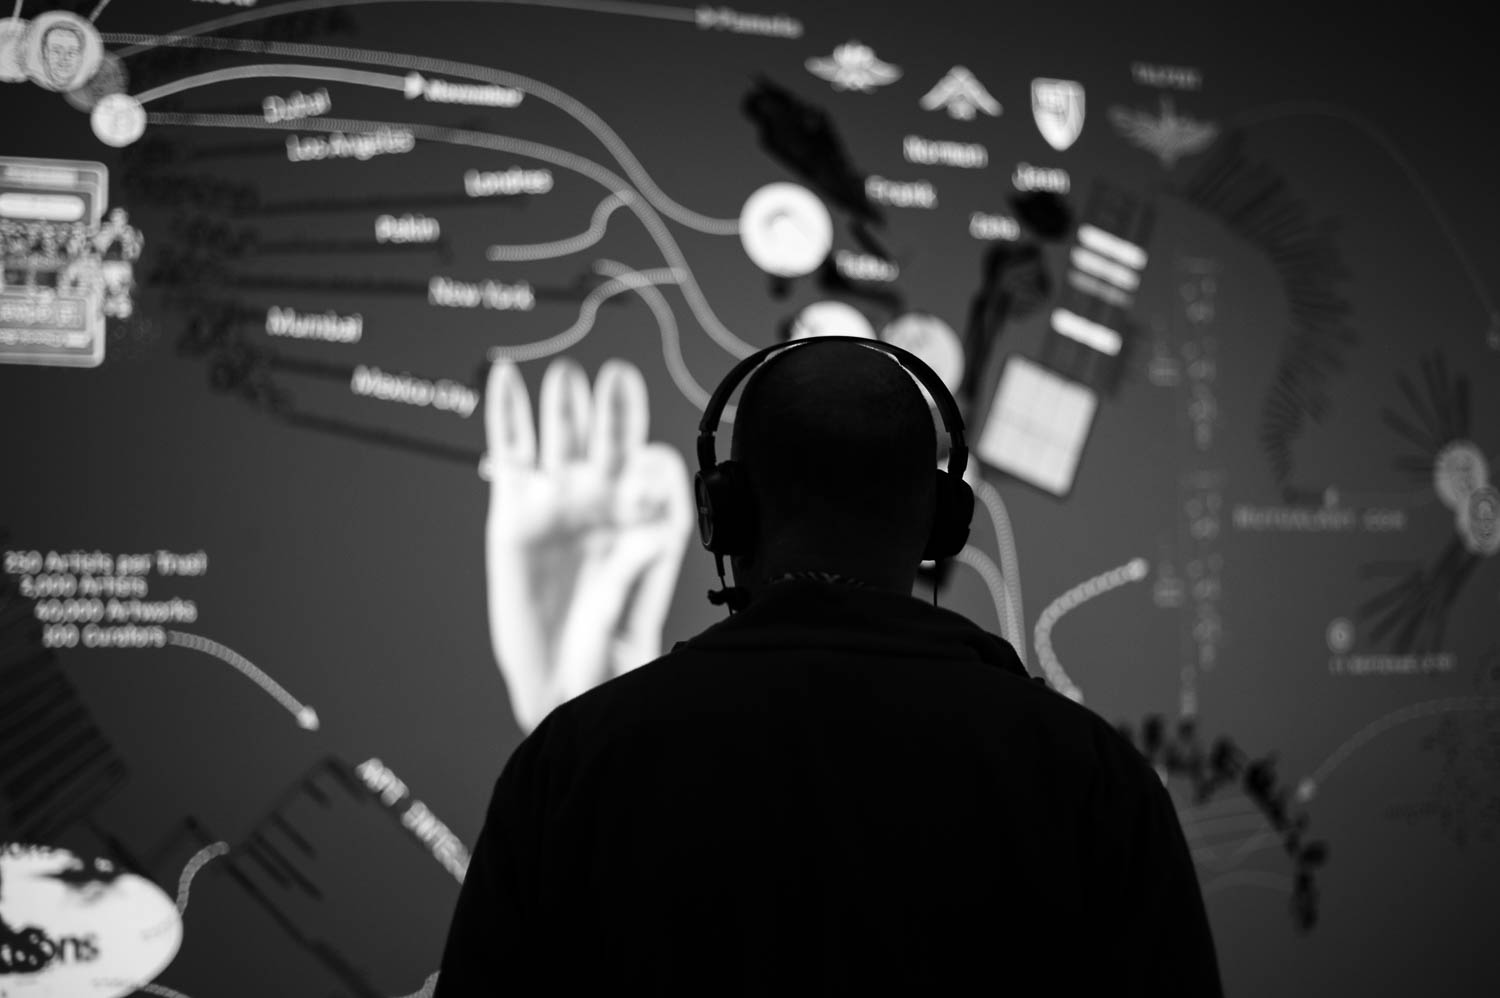 A man wearing headphones and looking at an animated display at ICA Boston